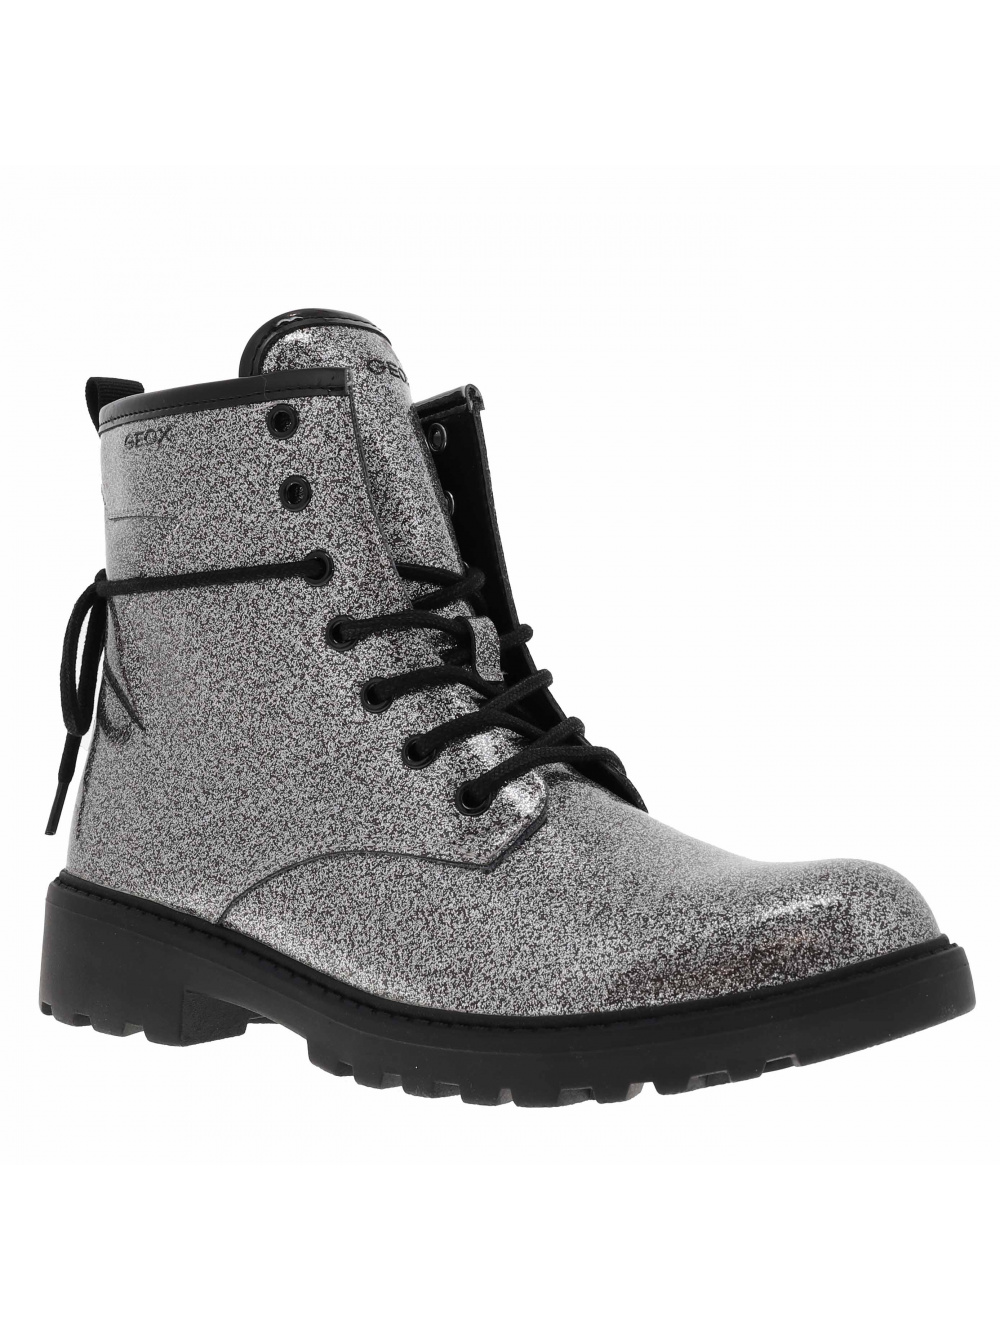 Boots fille CASEY argent GEOX